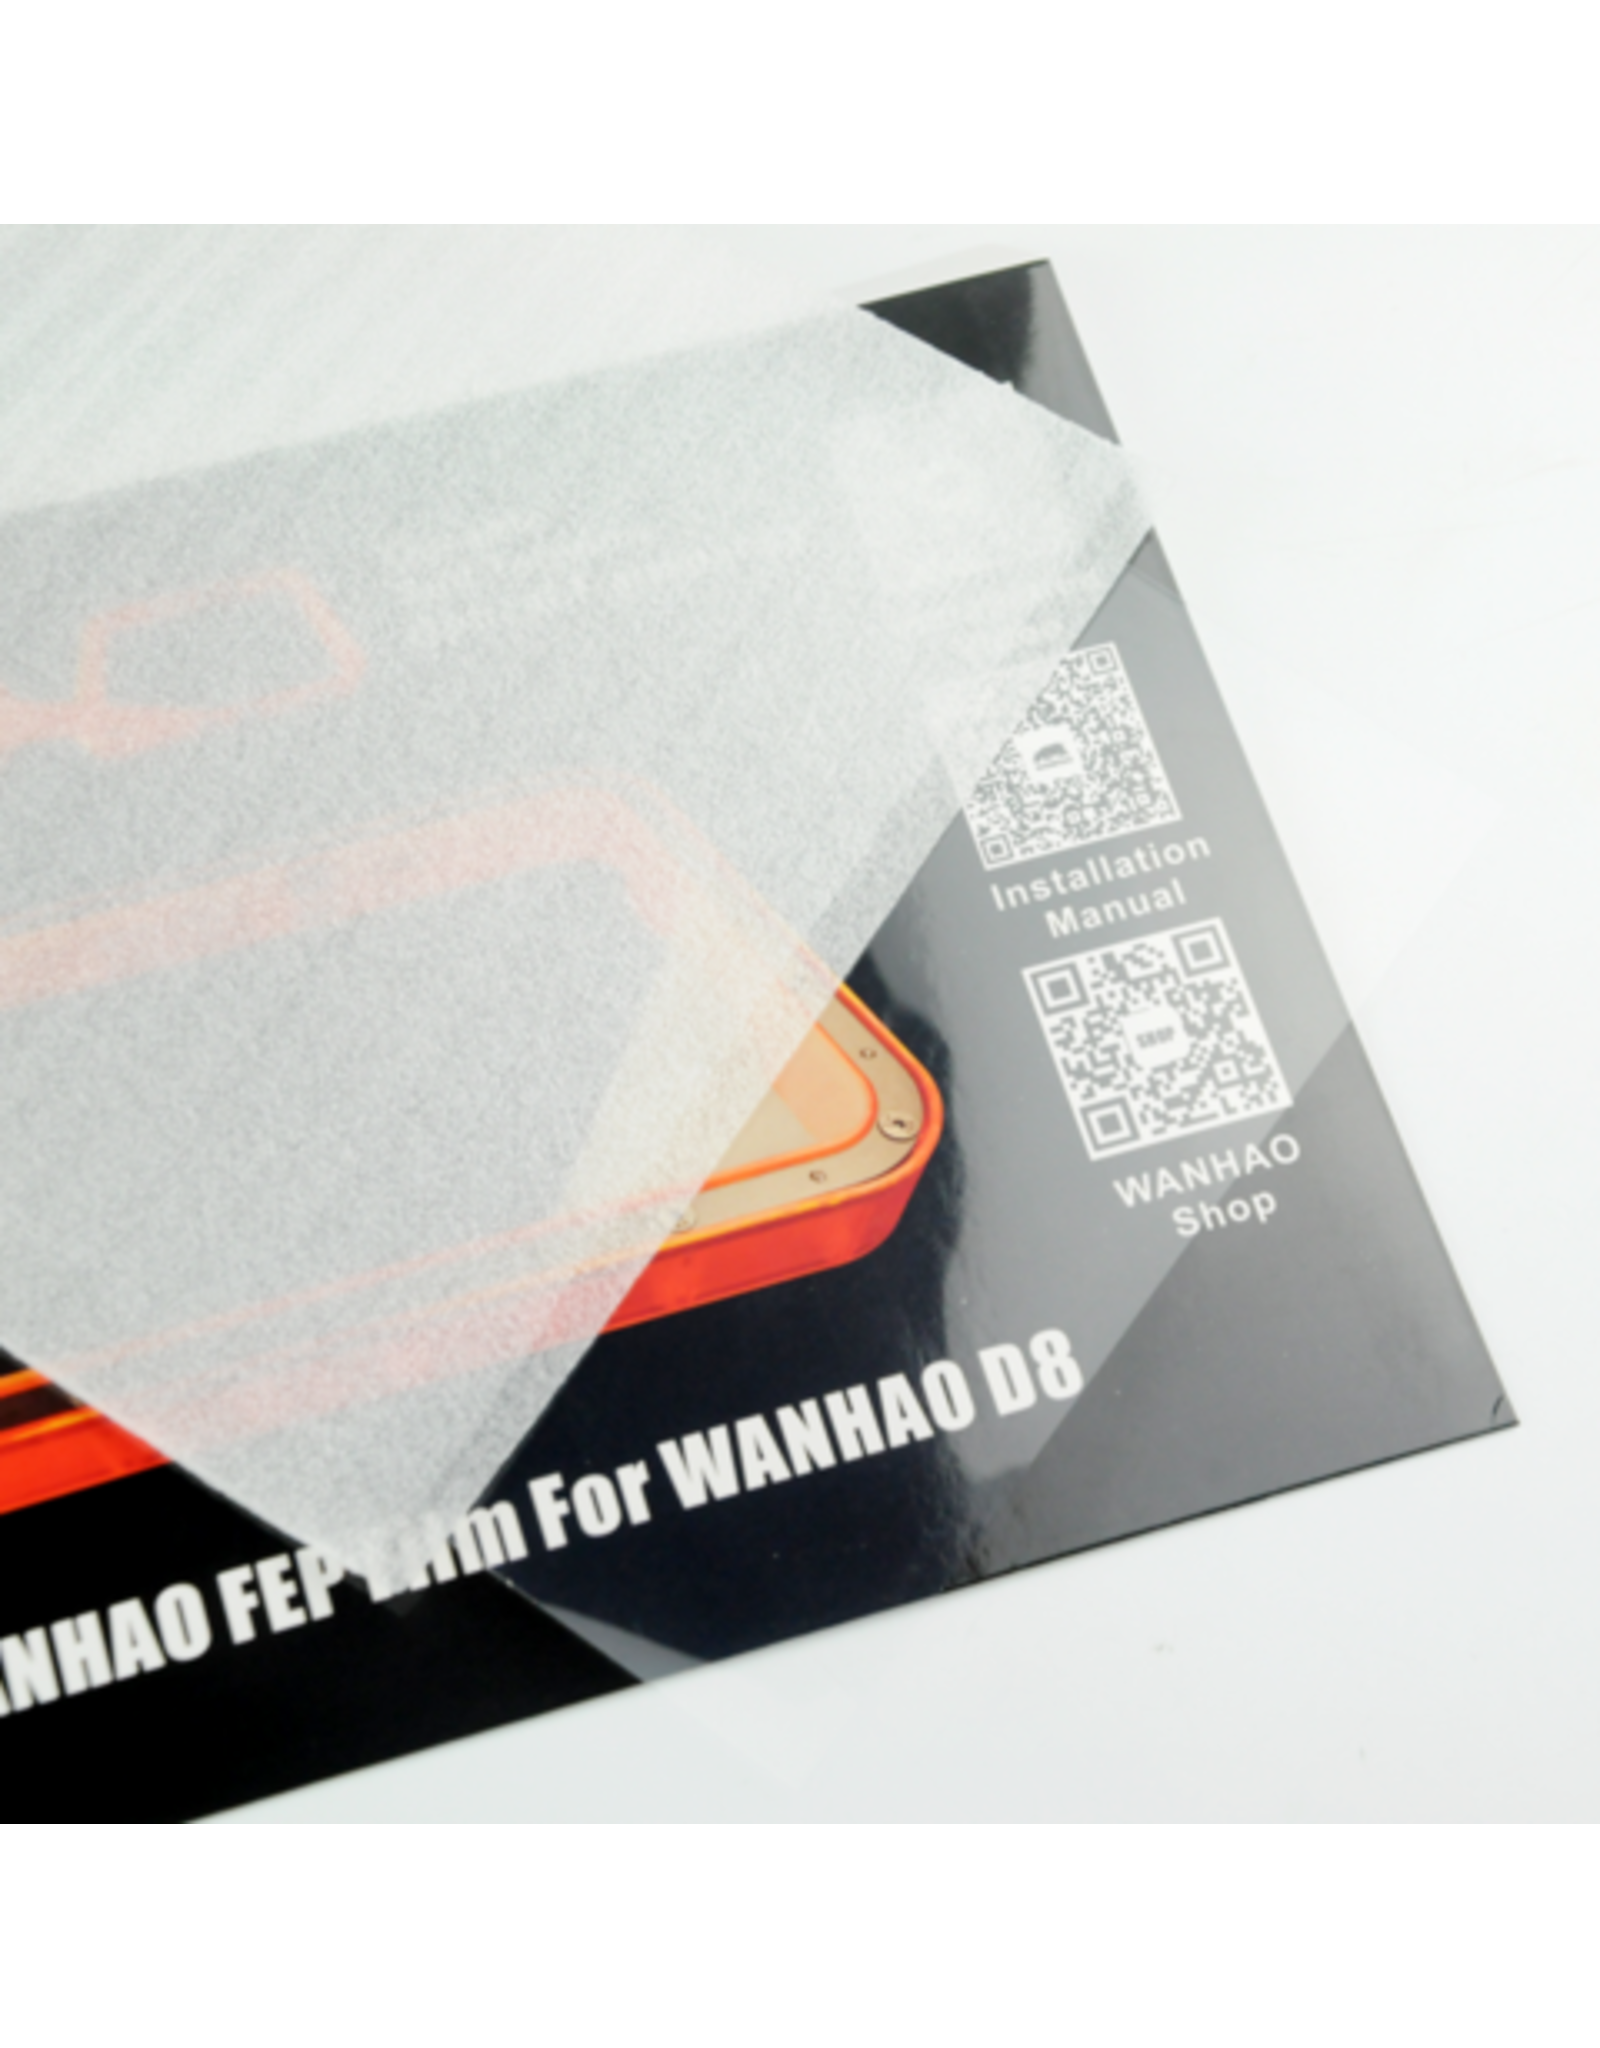 Wanhao Wanhao D8 FEP Film 0.15 mm